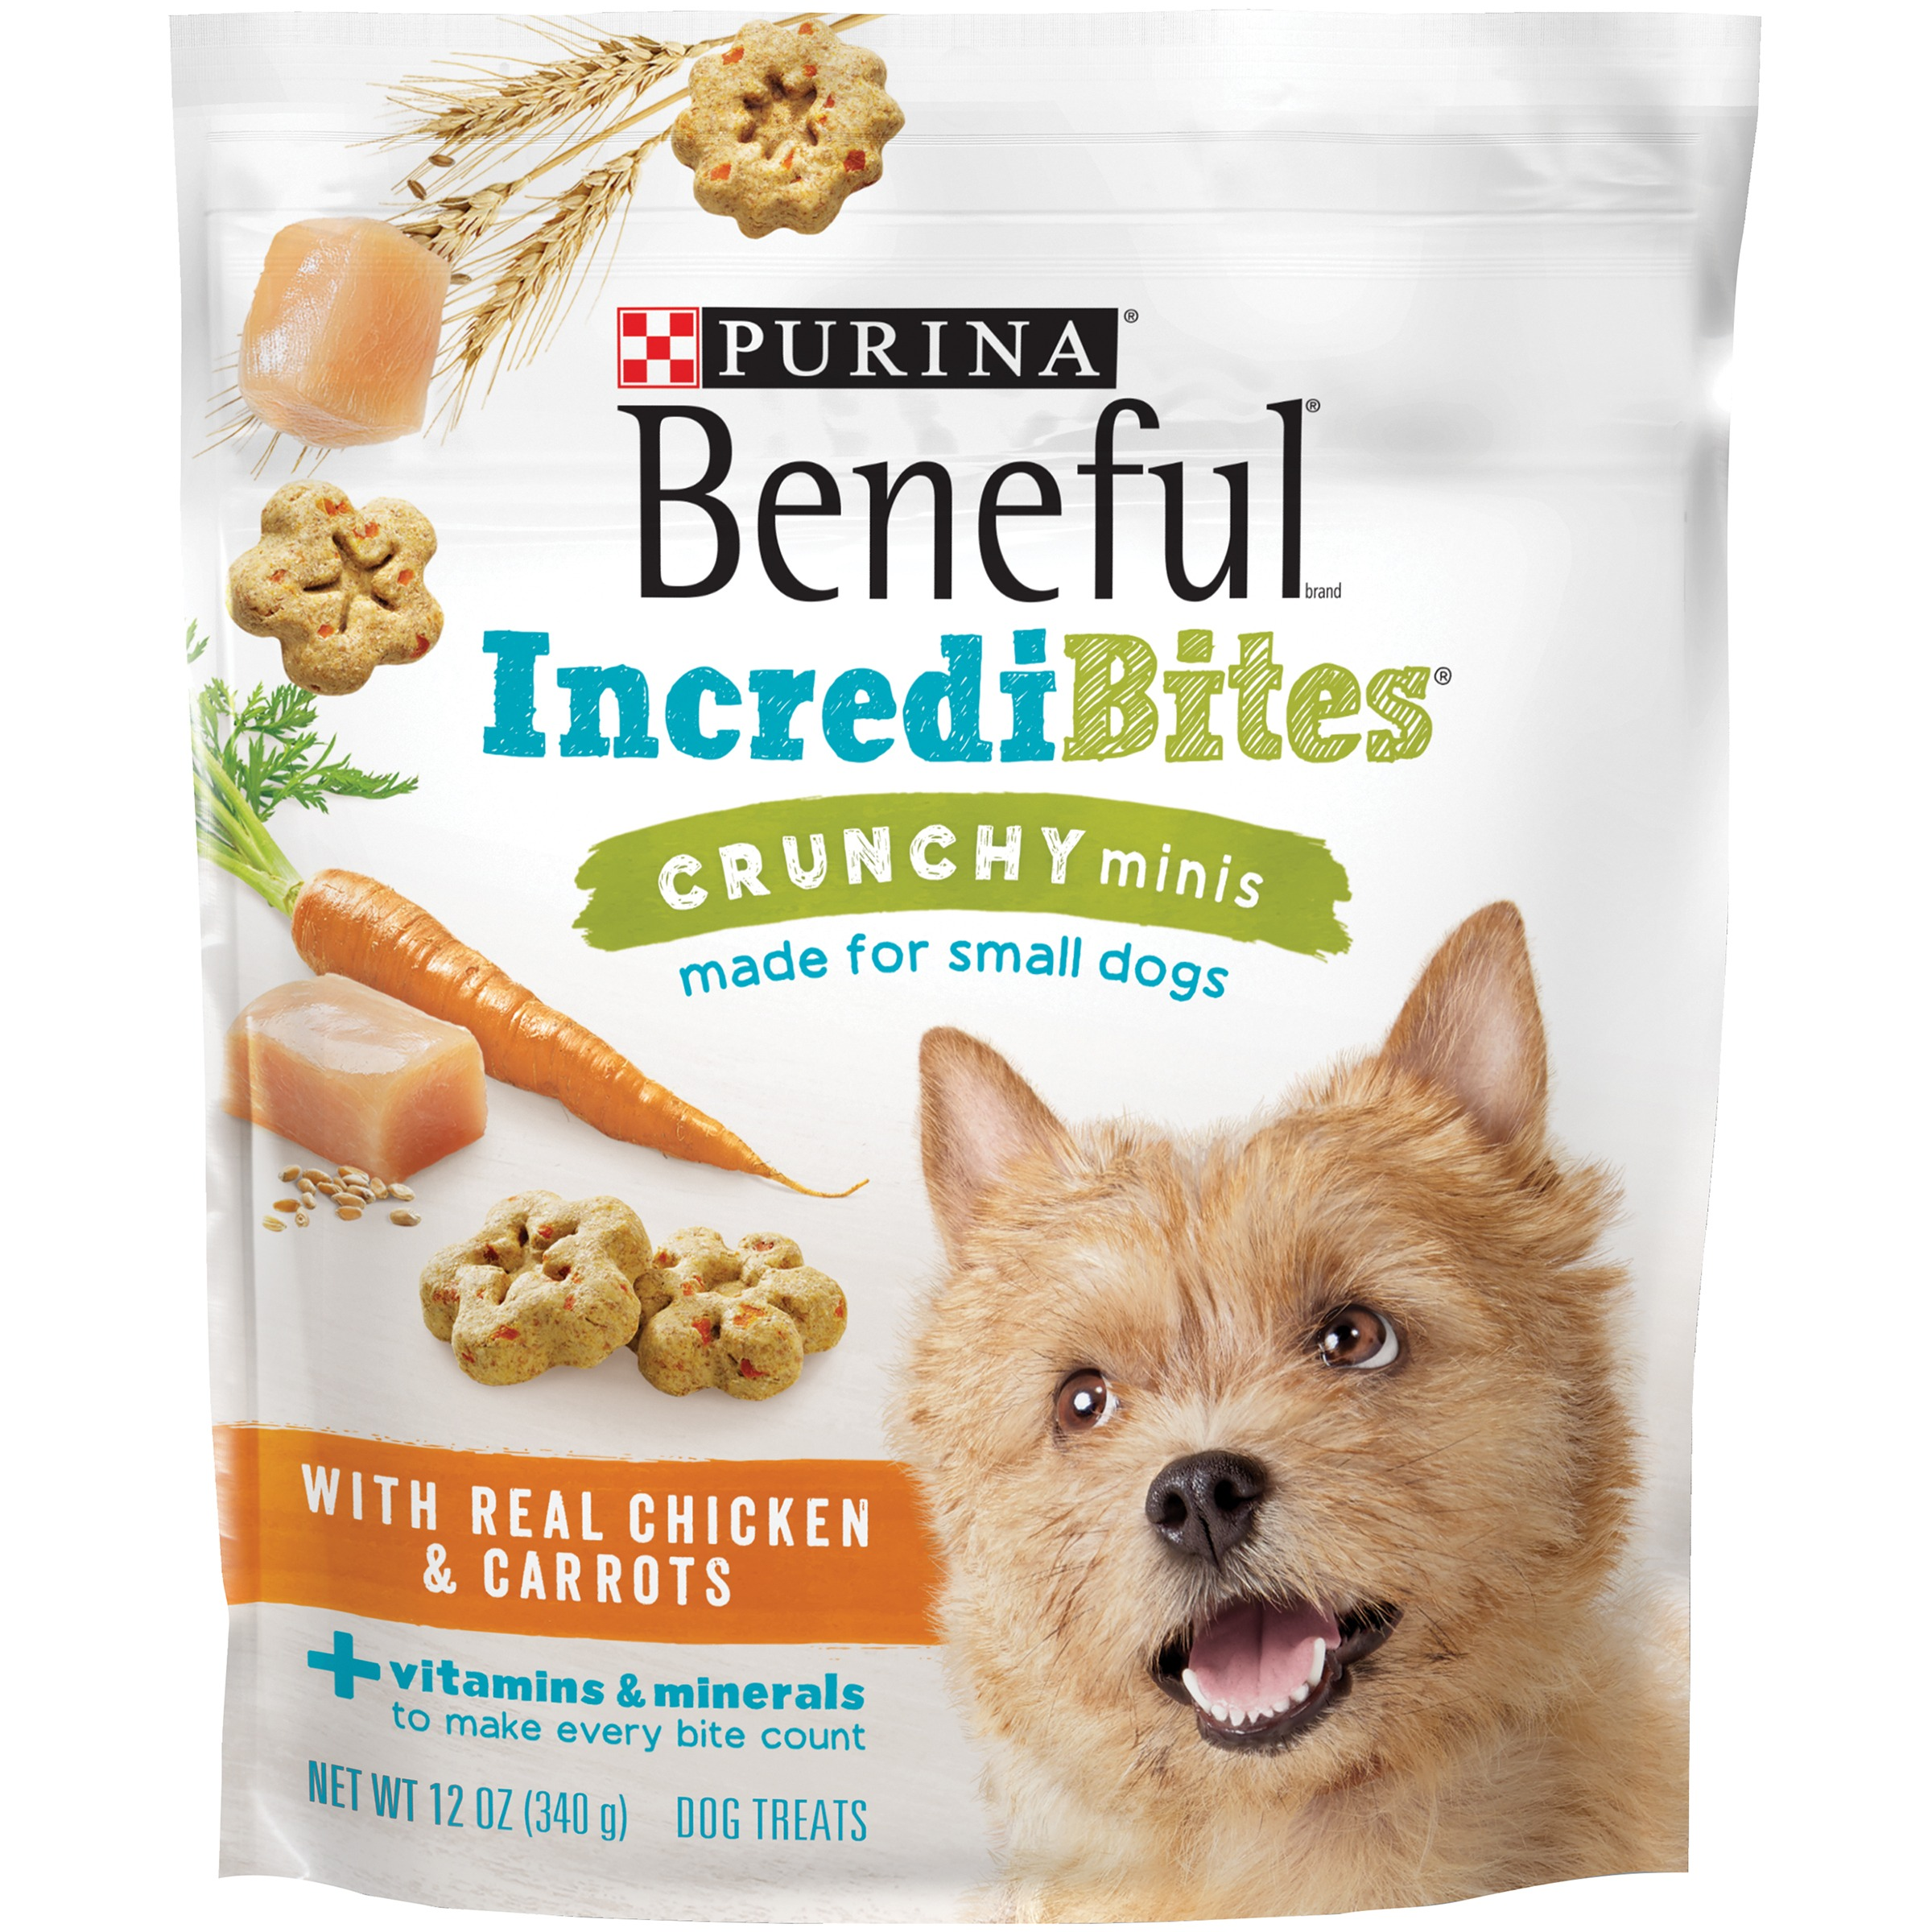 Purina Beneful IncrediBites Crunchy Minis With Real Chicken & Carrots Dog Treats 7 oz. Pouch by Nestl�� Purina PetCare Company